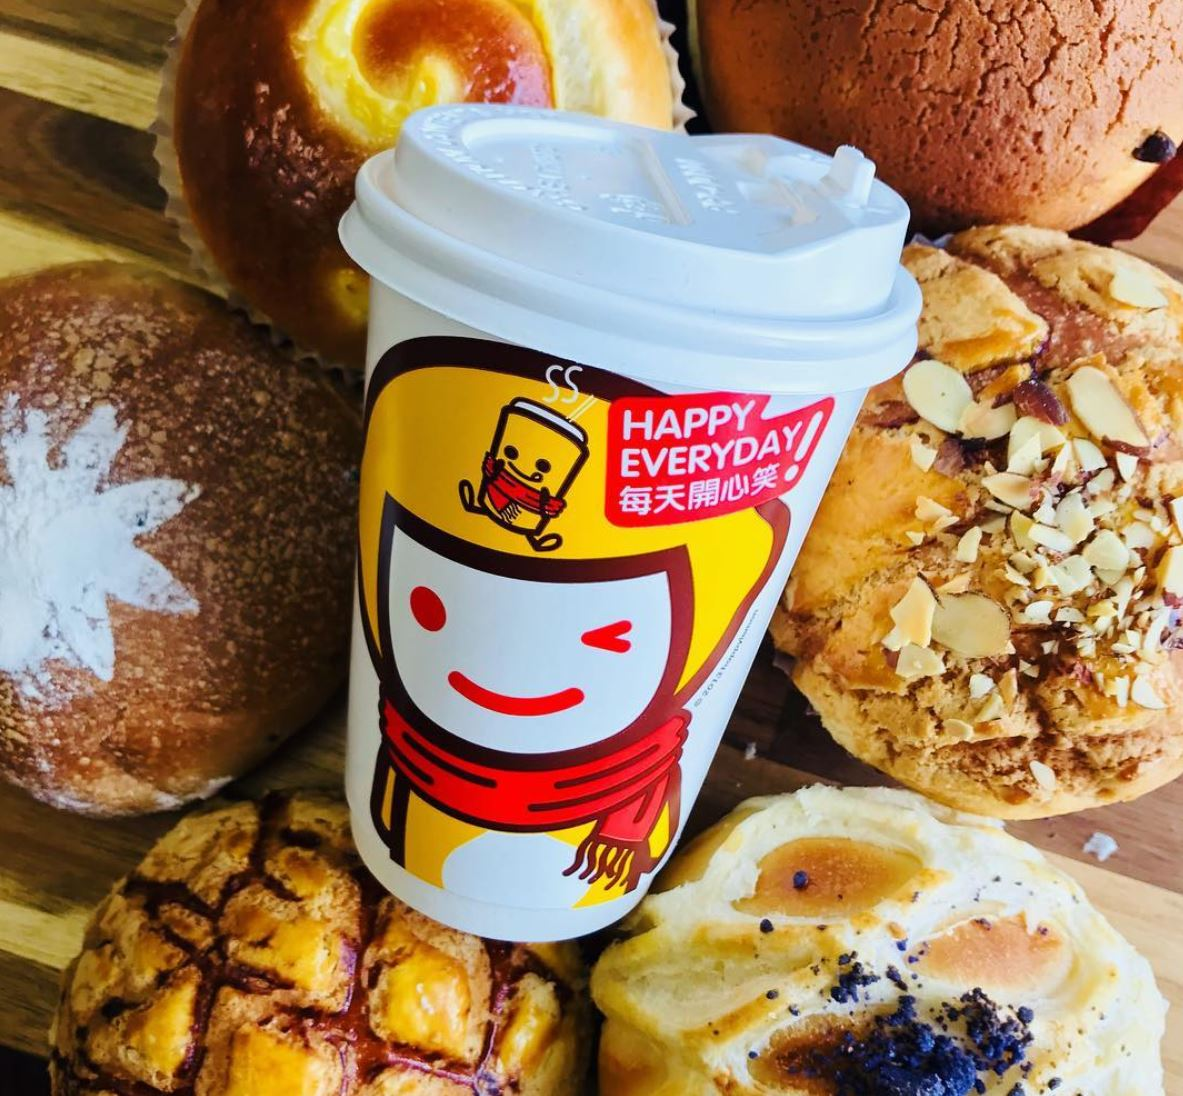 Mar. 24 - 25 | Sunmerry Happy Lemon Grand Opens in Gardena with BOGO Free Deals All Day